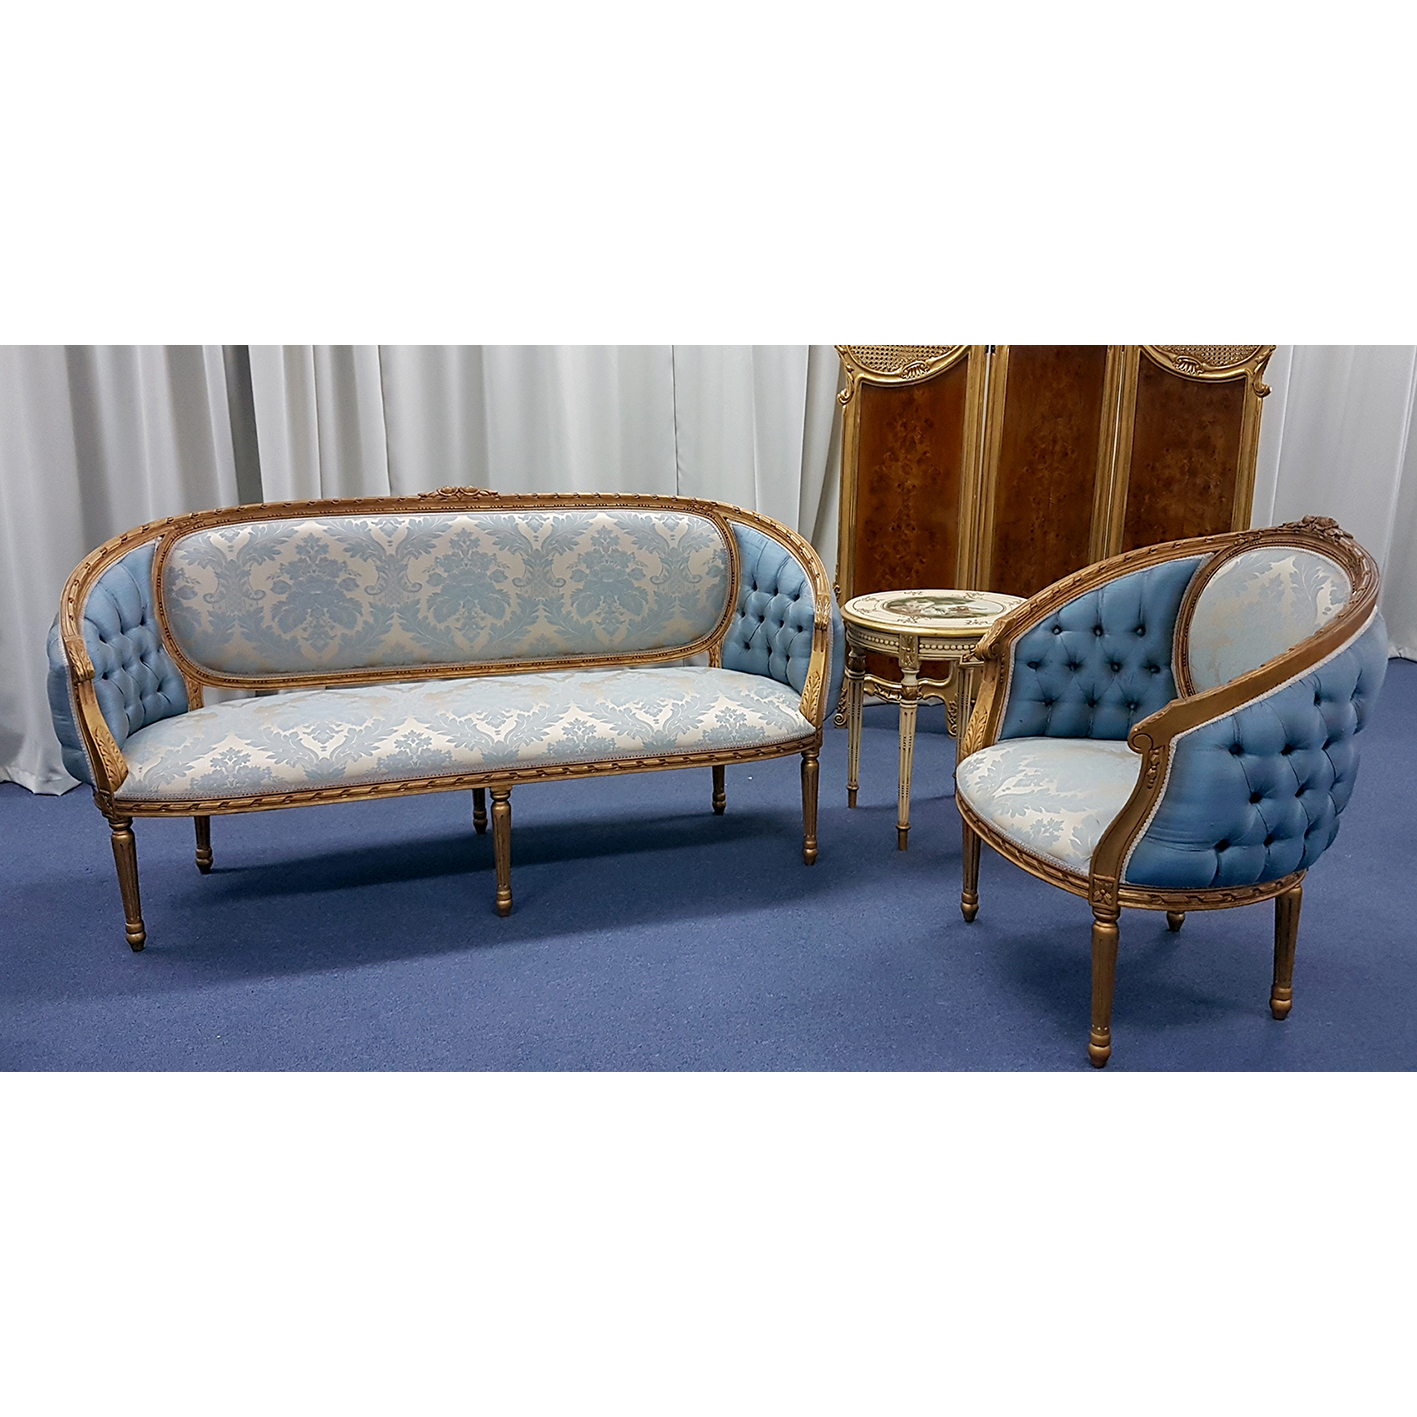 Astounding French Sofa And Matching Chairs In Gold Leaf Gmtry Best Dining Table And Chair Ideas Images Gmtryco